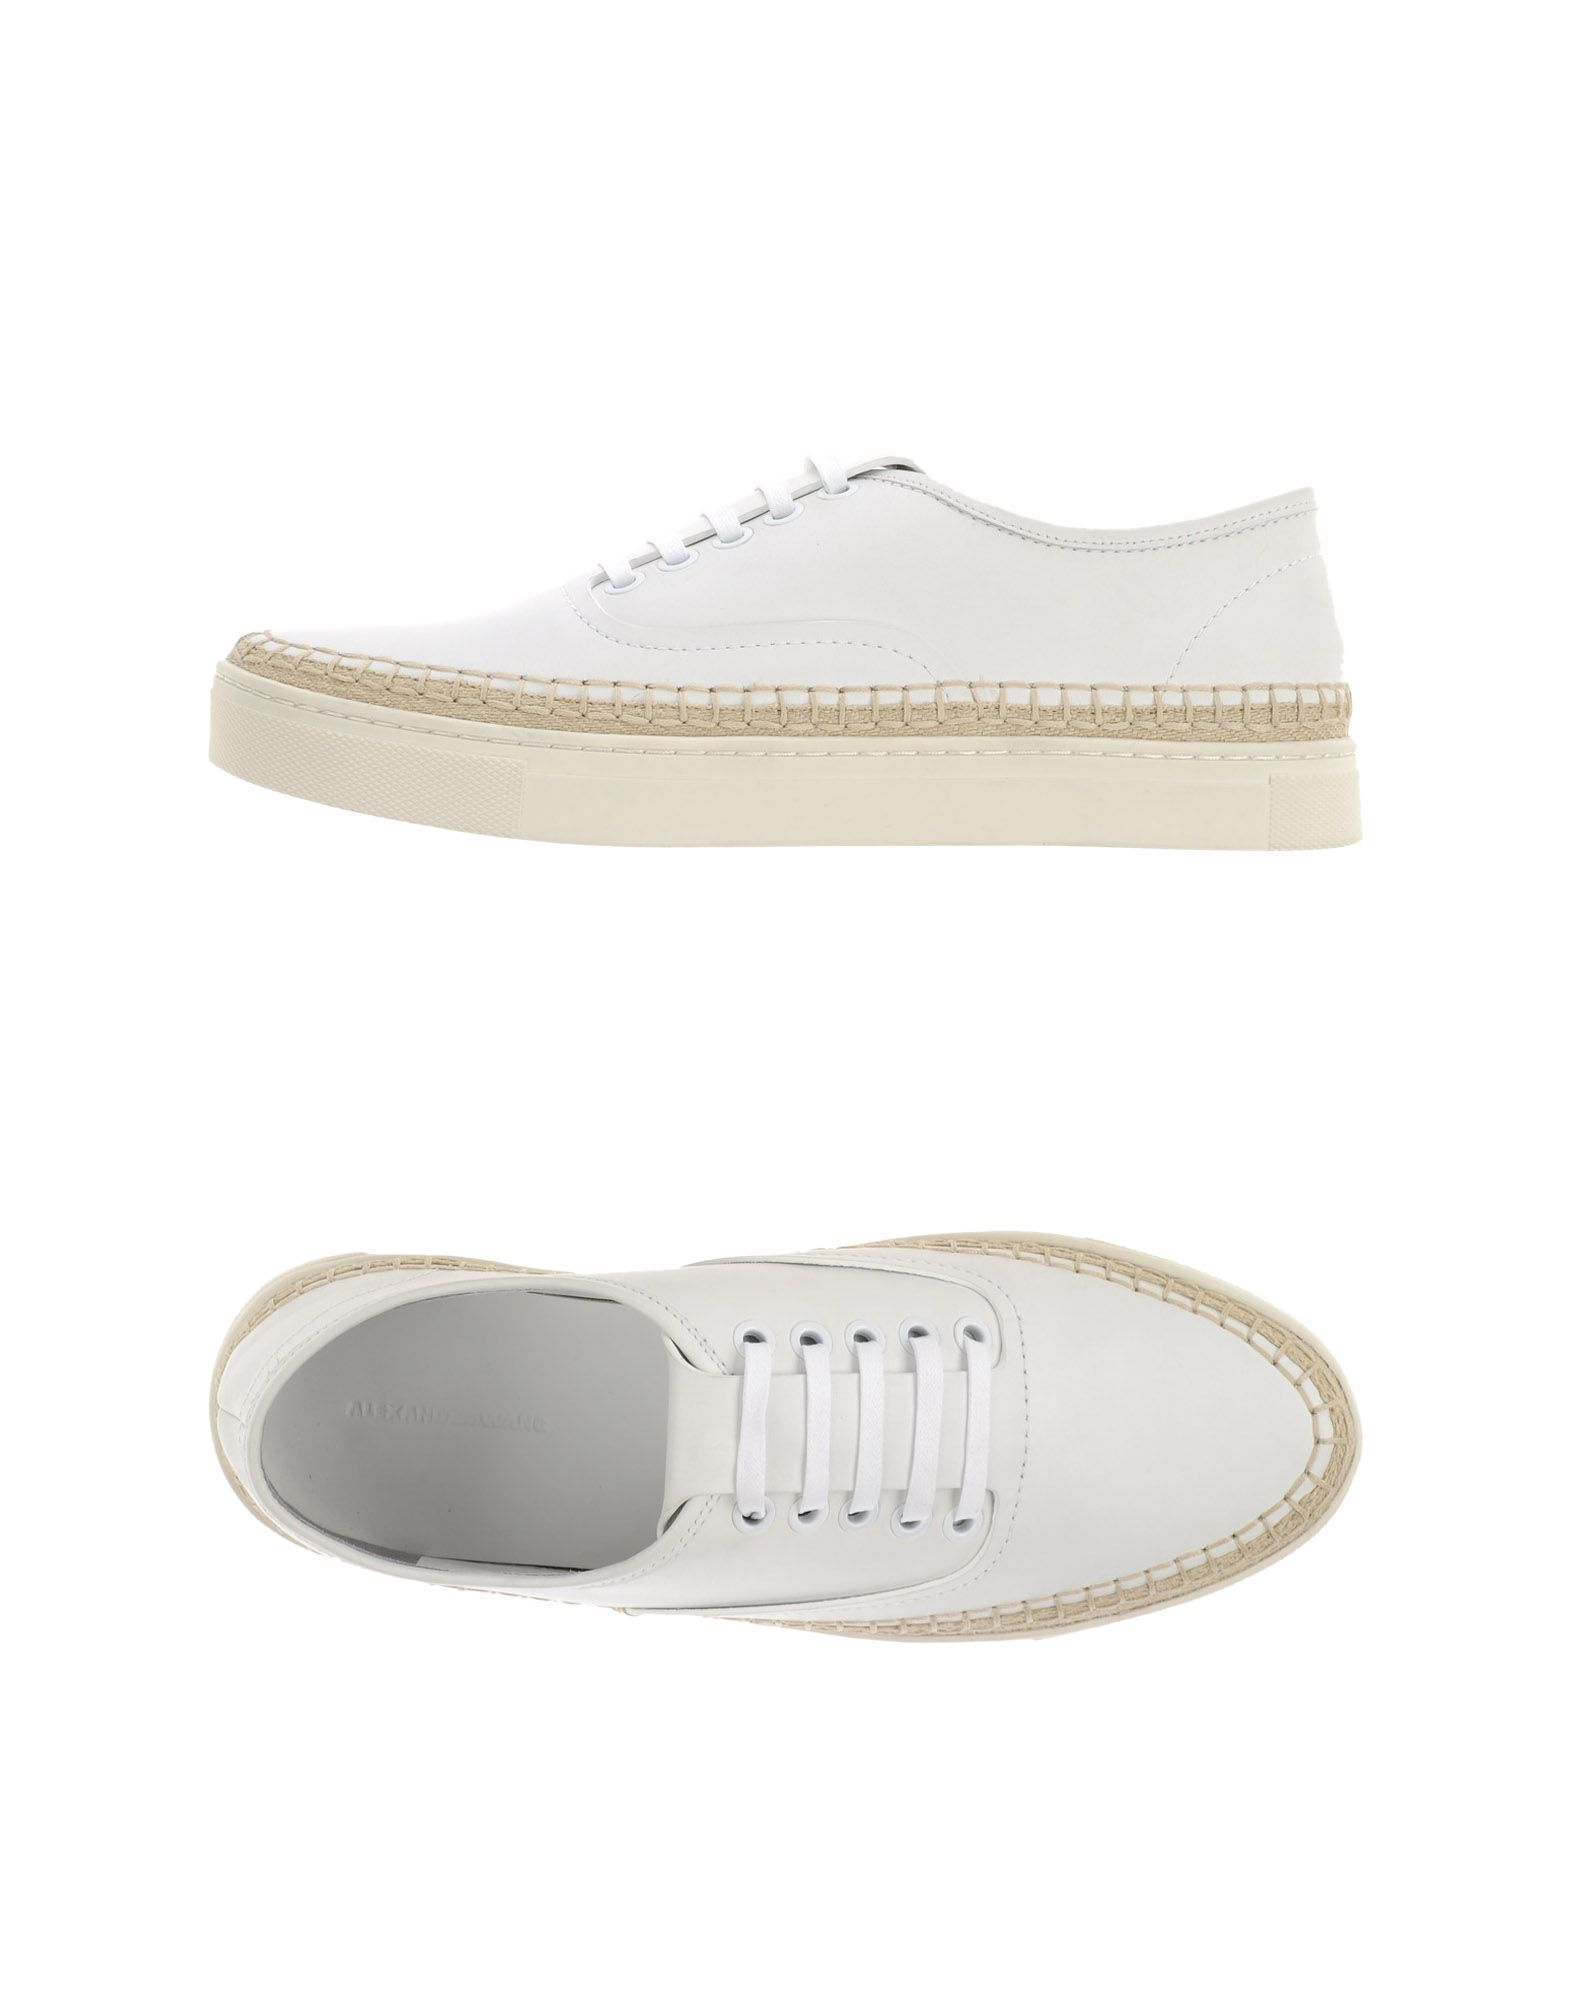 Sneakers Alexander Wang Donna - Acquista online su